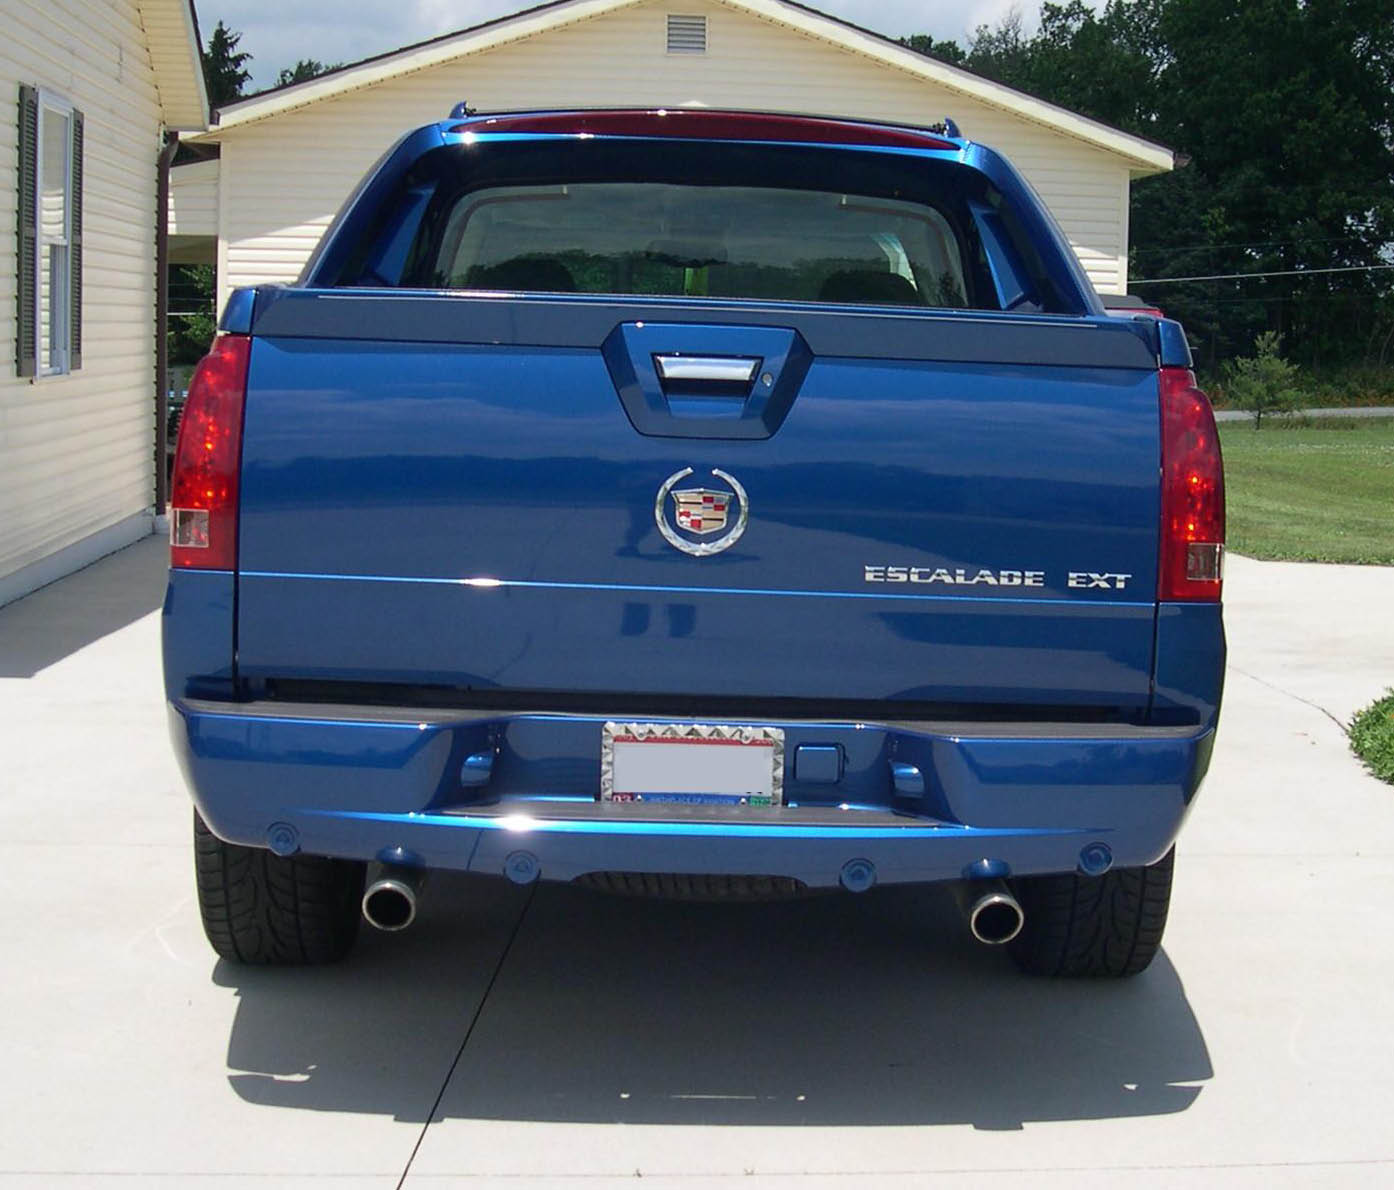 2003 cadillac escalade ext information and photos zombiedrive. Black Bedroom Furniture Sets. Home Design Ideas